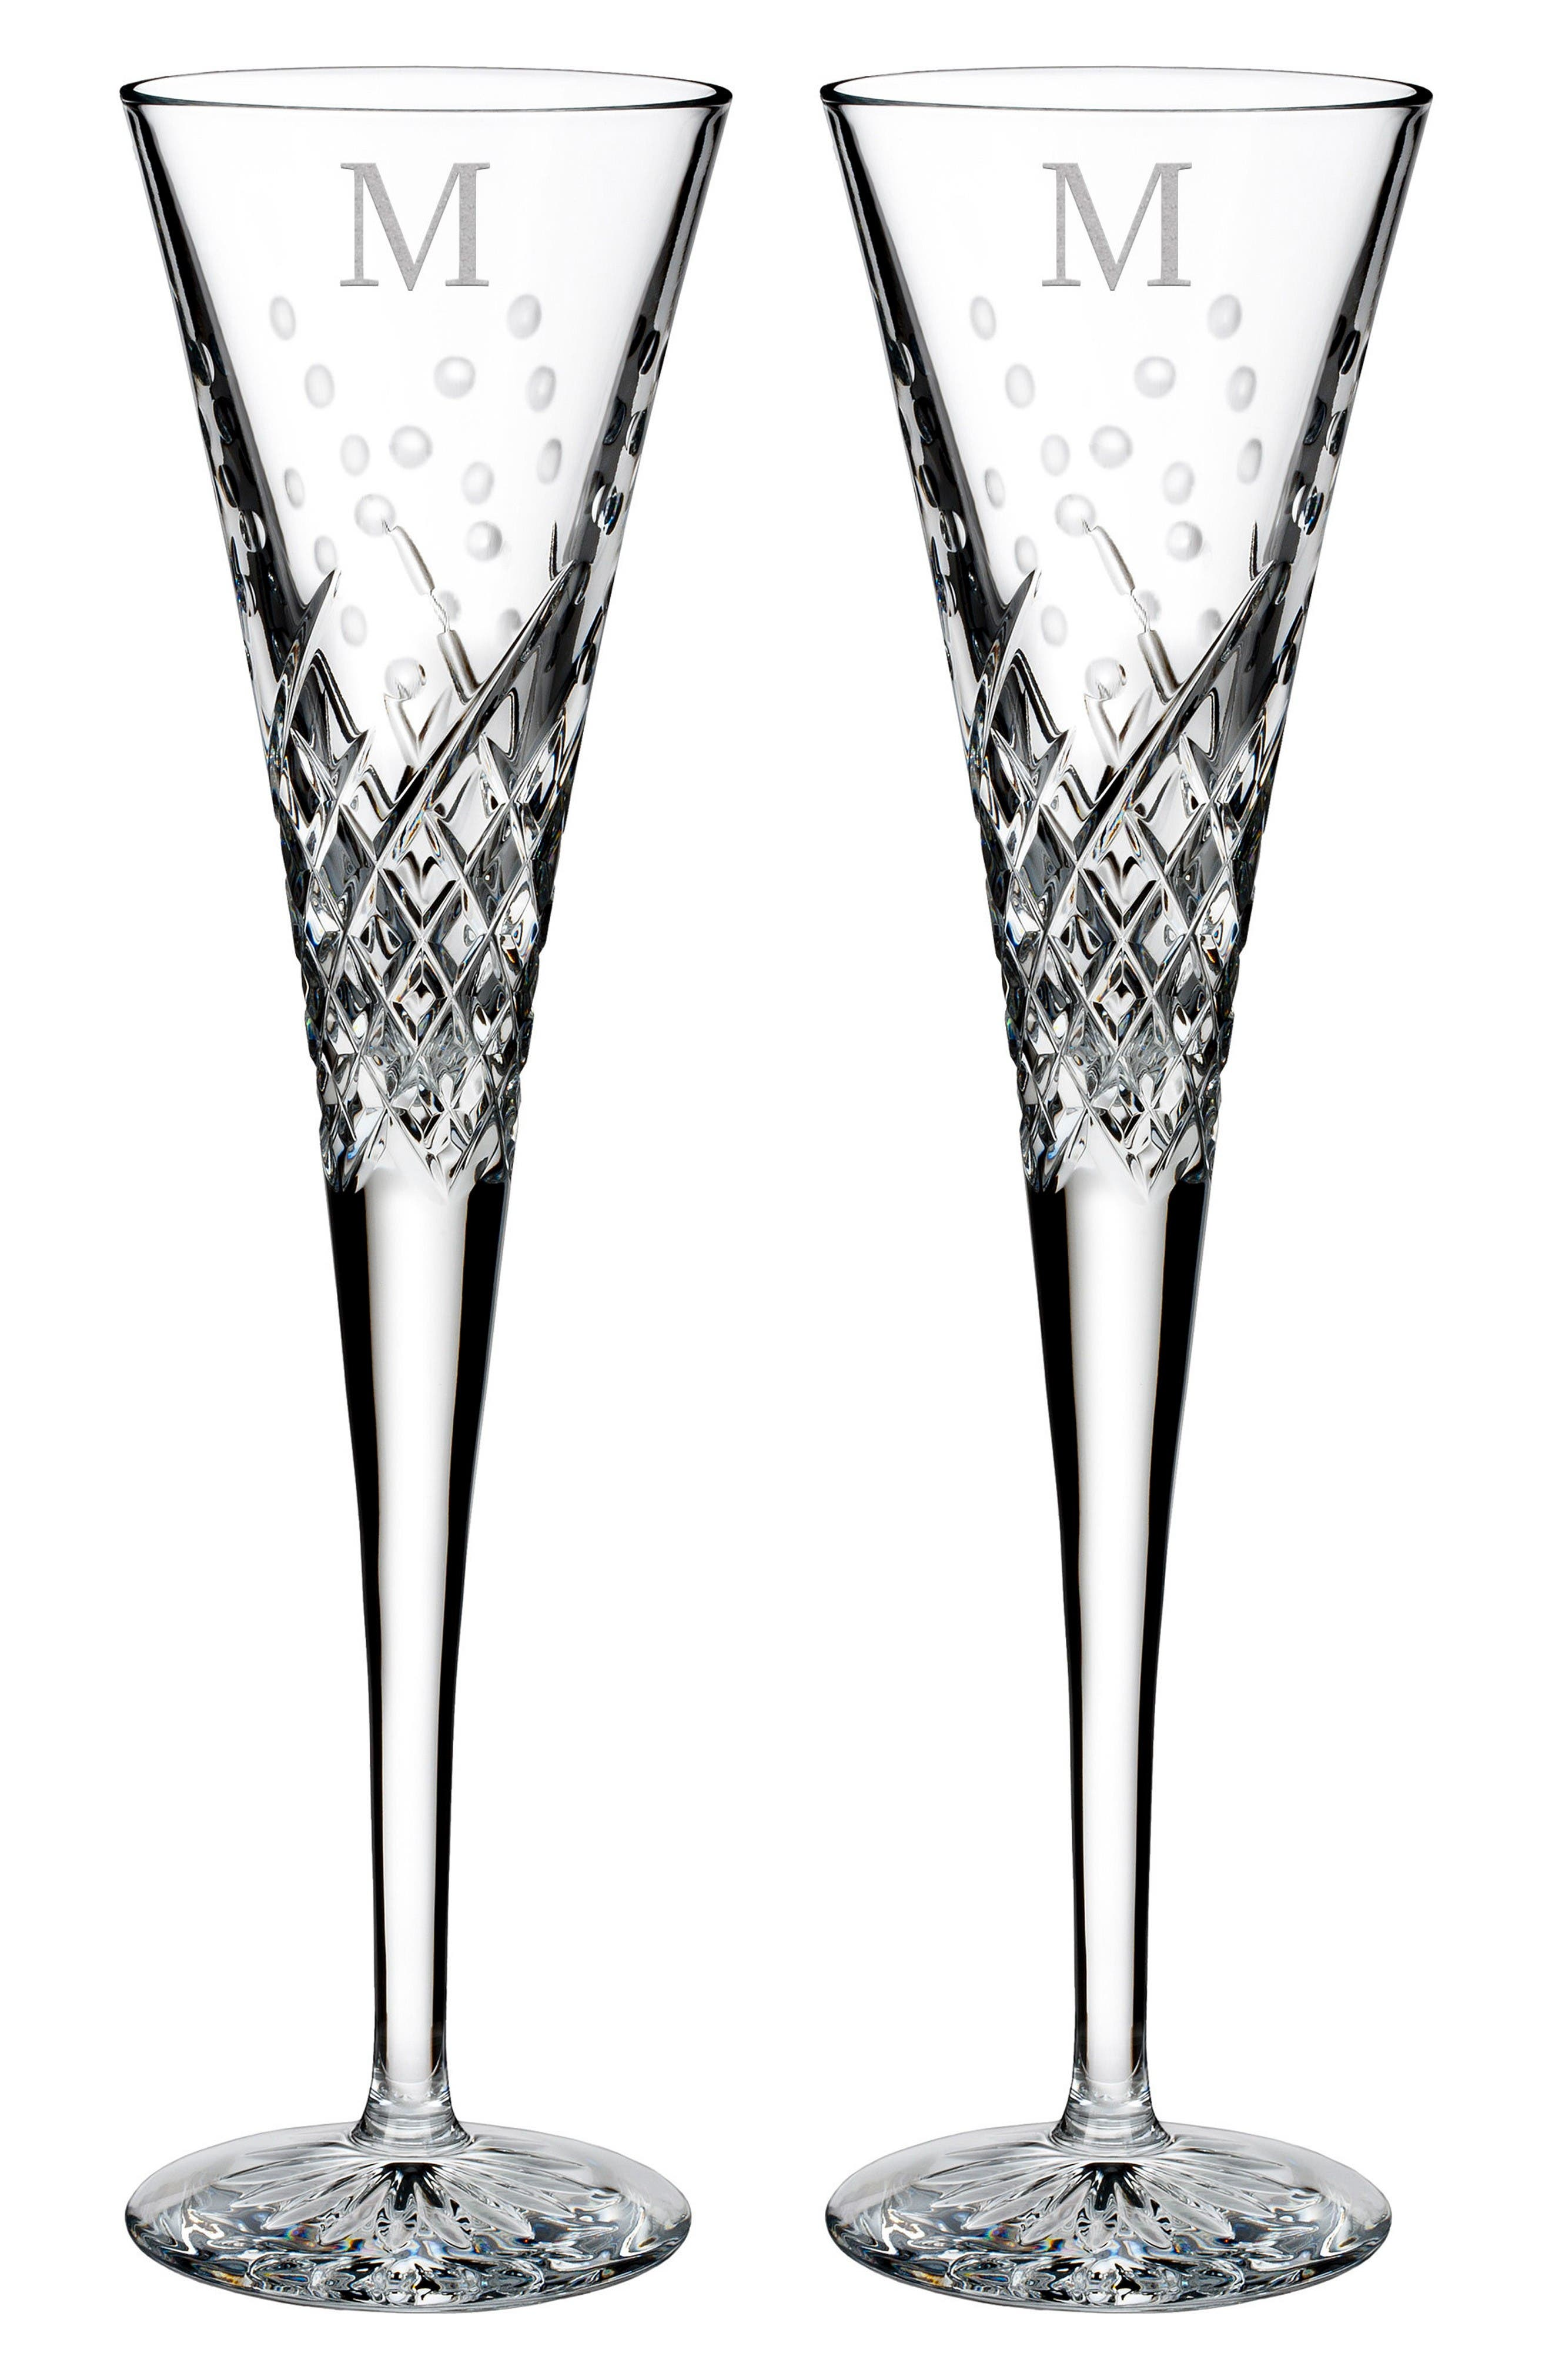 Alternate Image 1 Selected - Waterford Happy Celebrations Set of 2 Monogram Lead Crystal Champagne Flutes